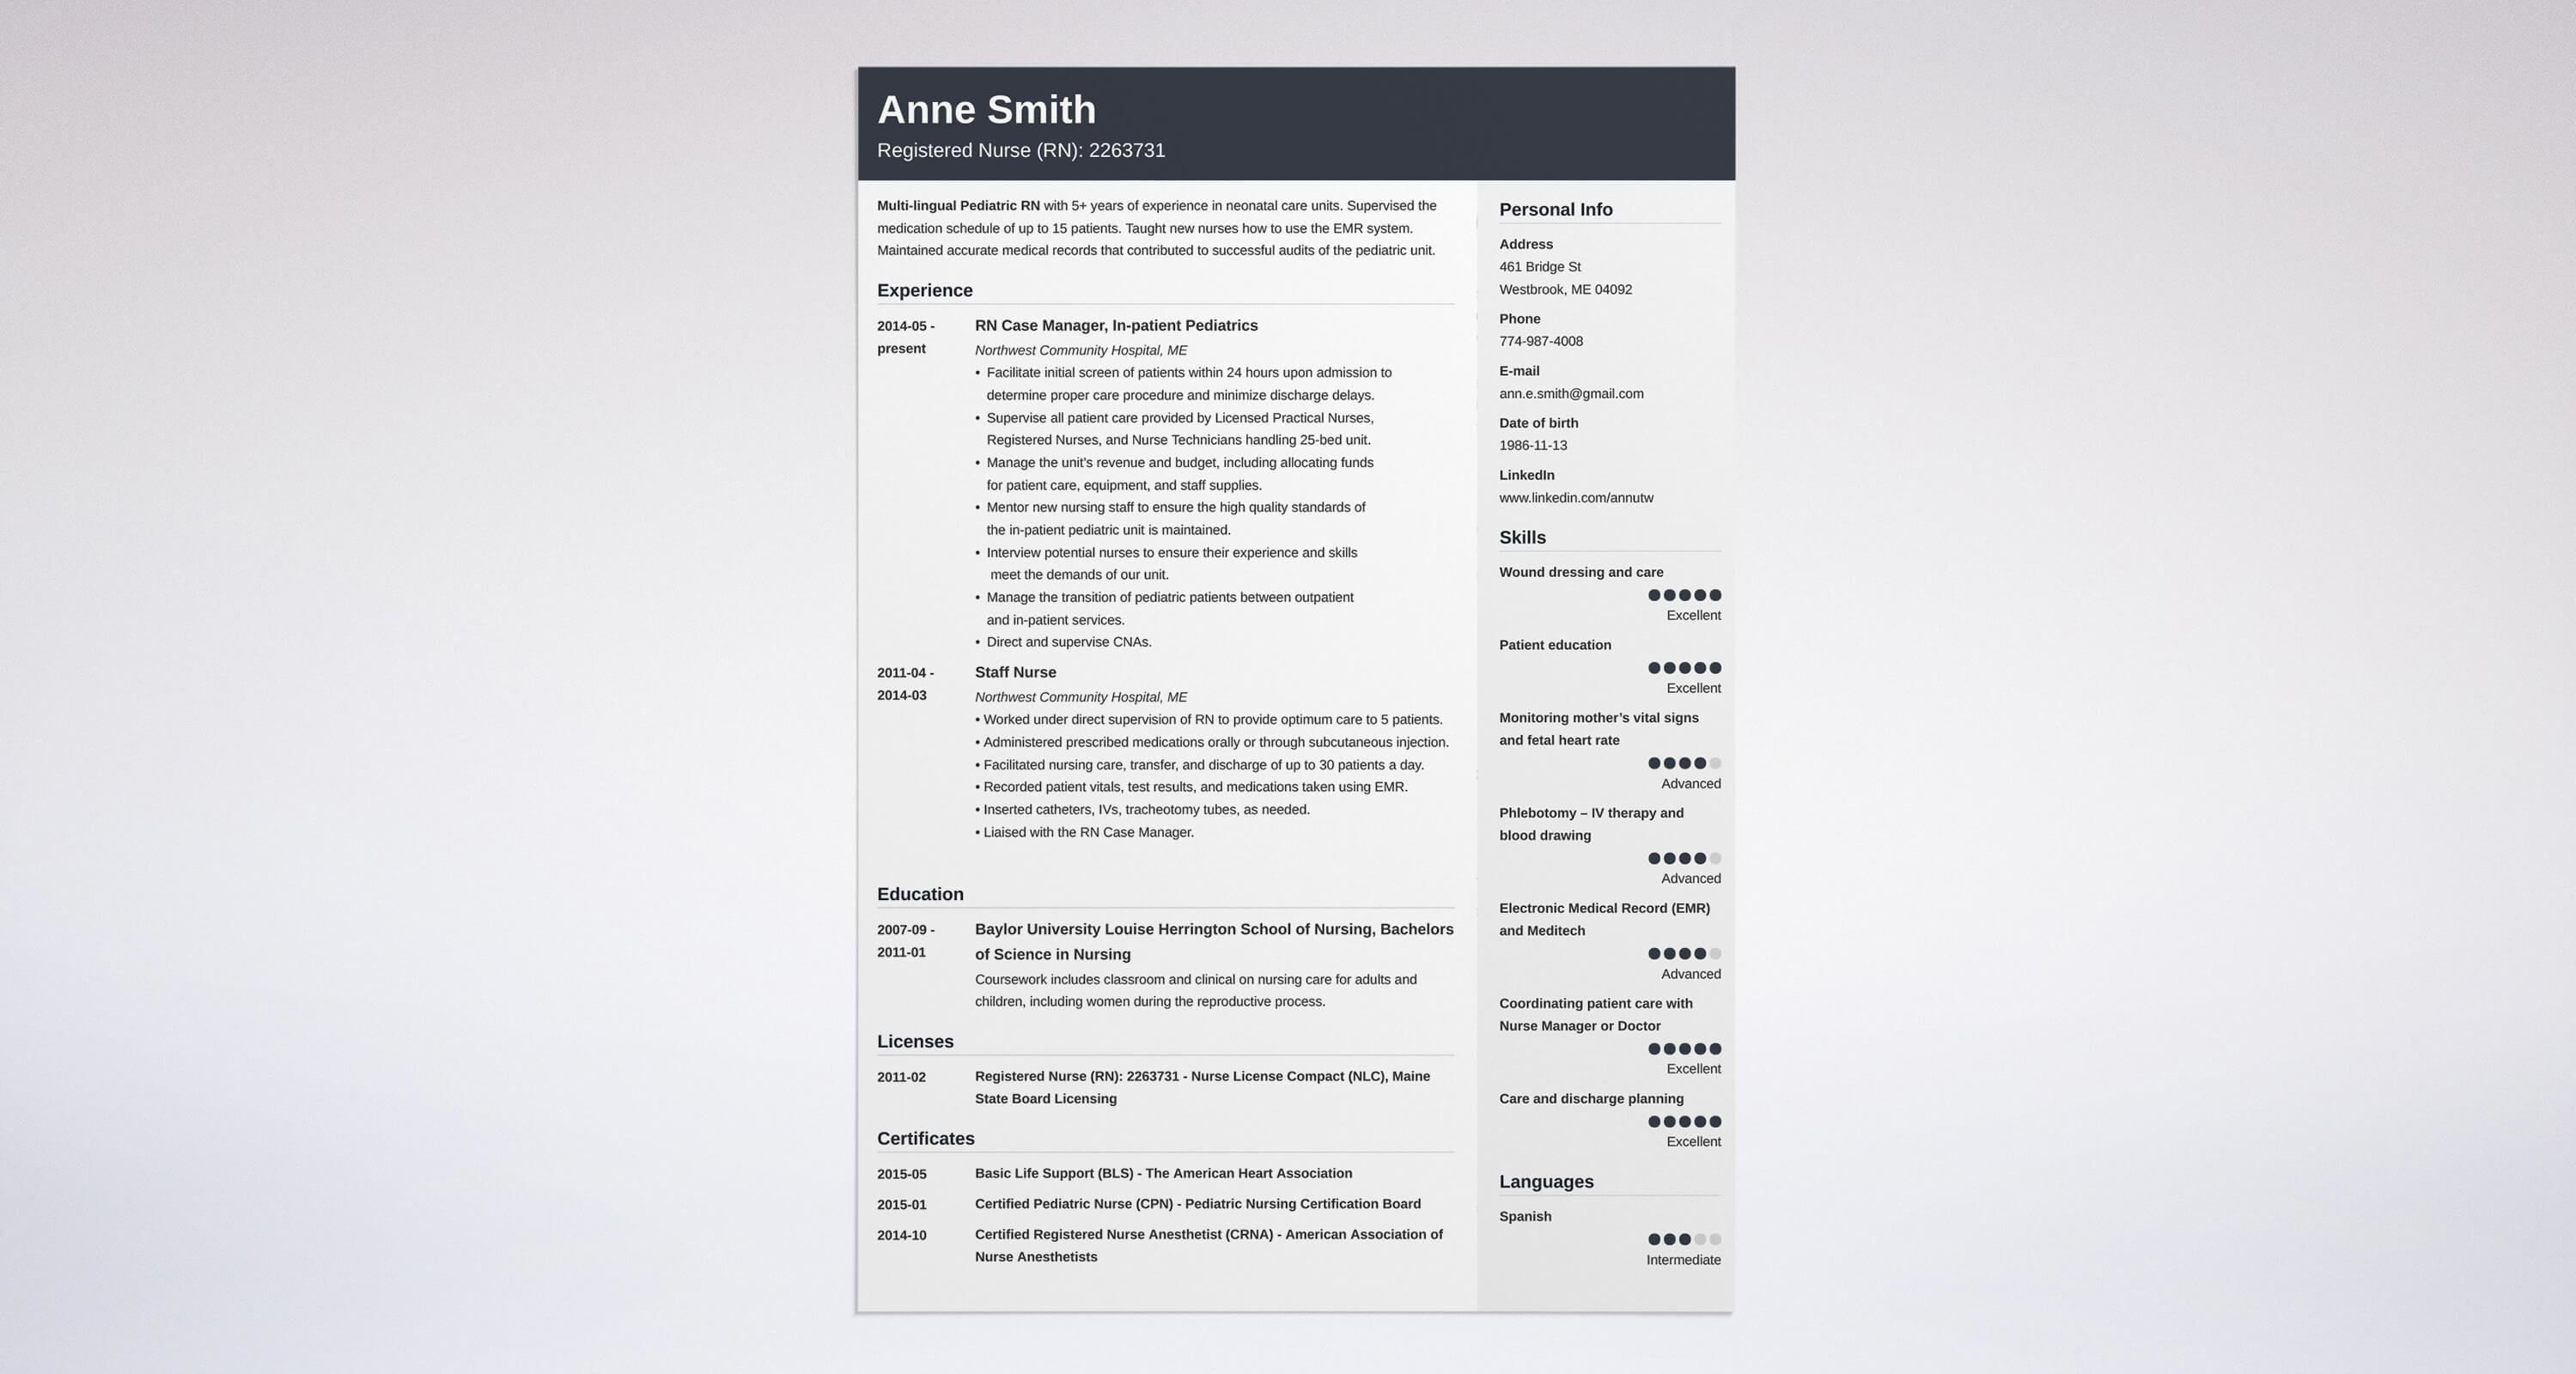 Nursing Resume: Sample U0026 Complete Guide [20+ Examples]